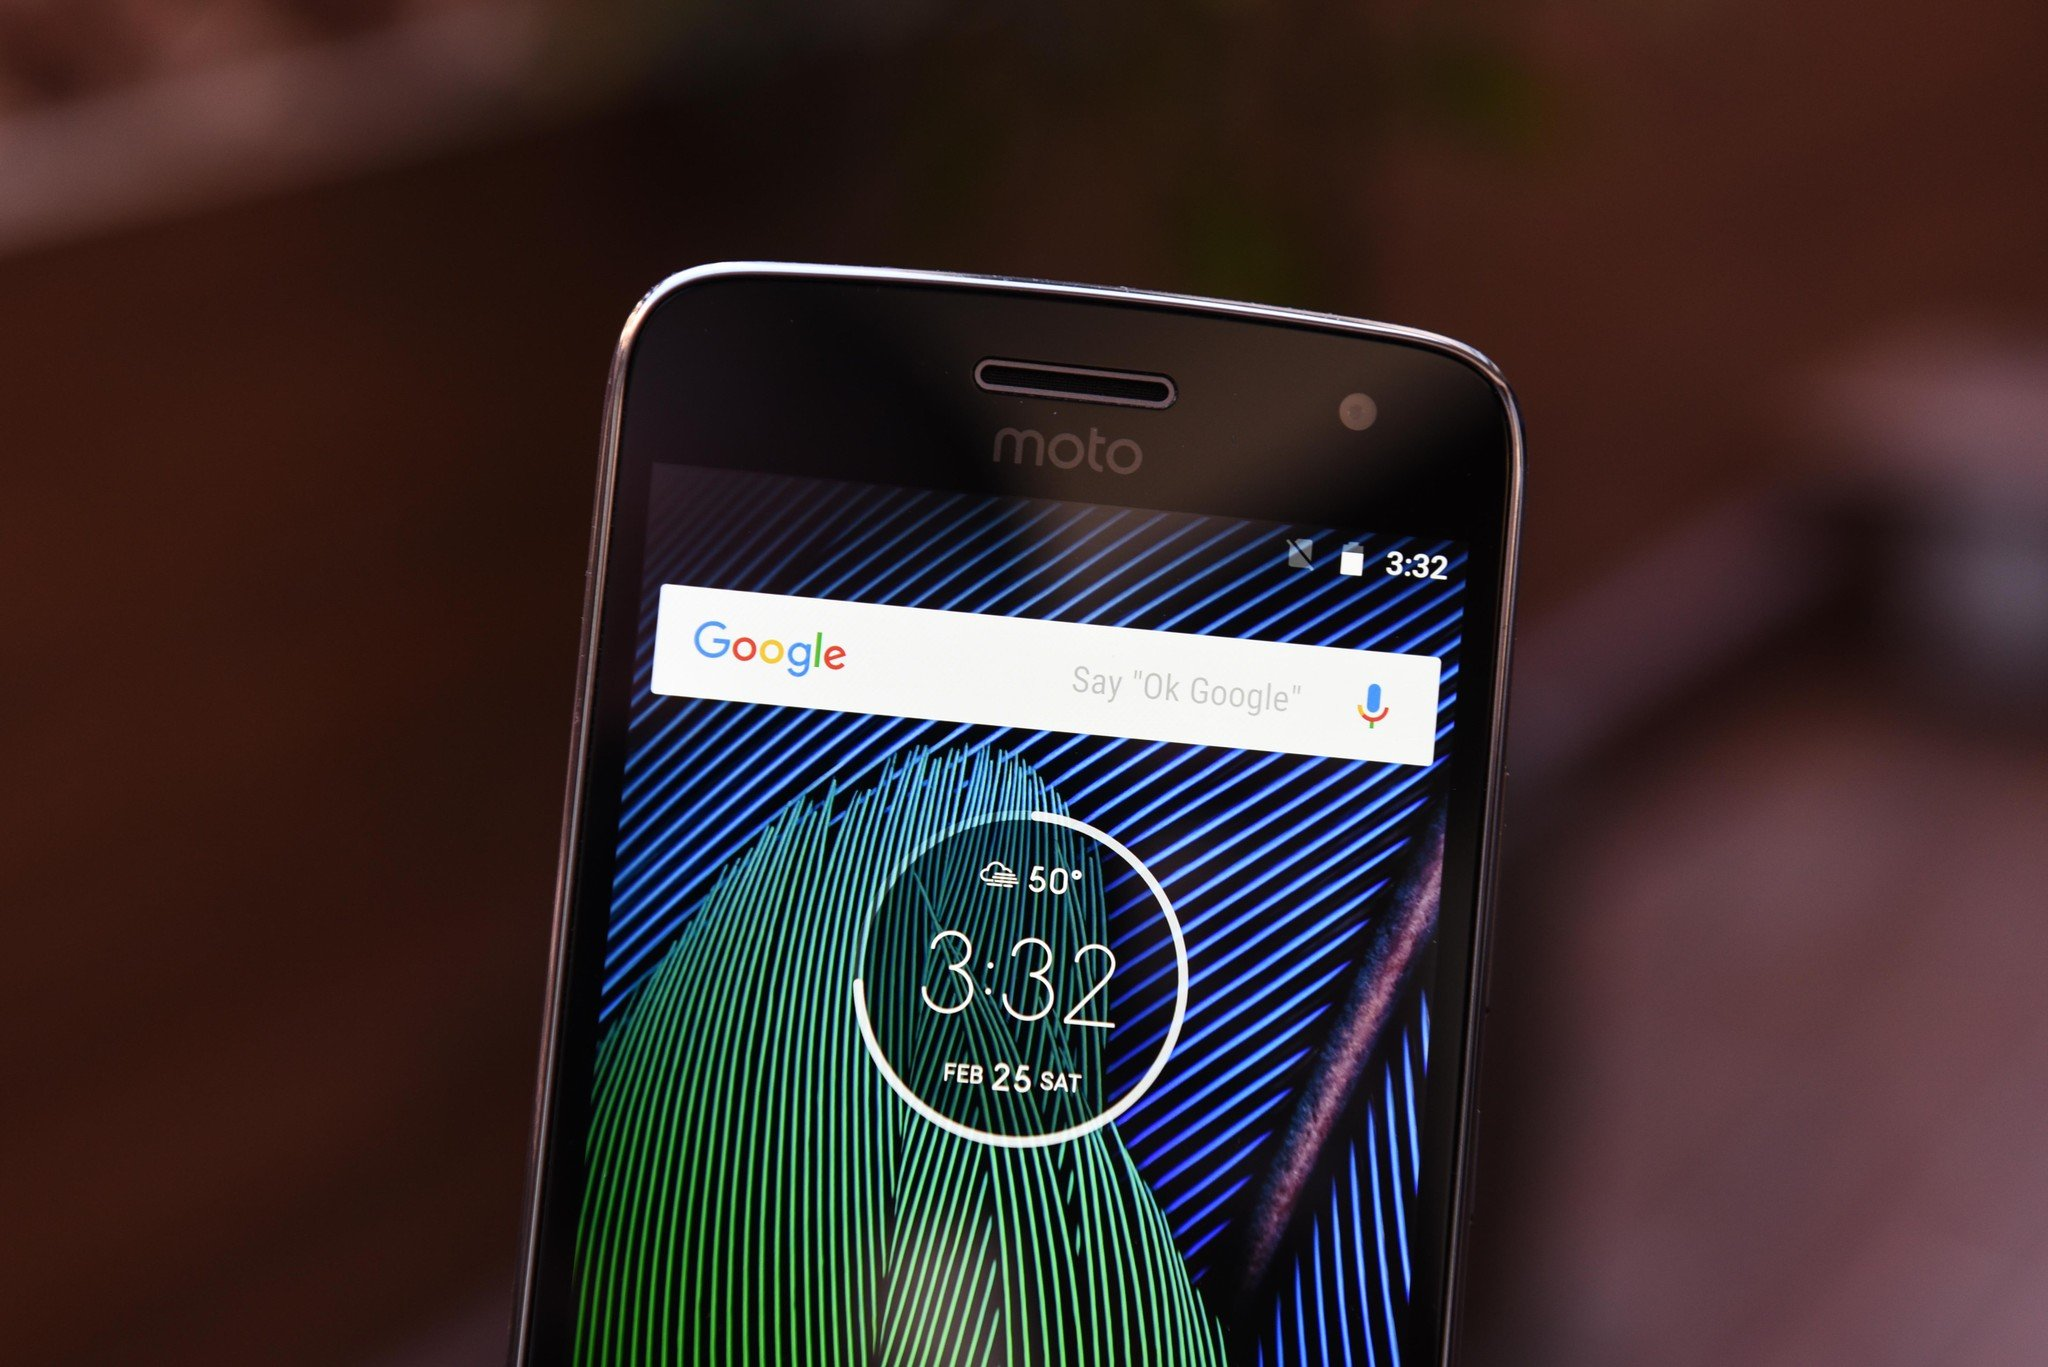 small resolution of like last year both the moto g5 and g5 plus offer full hd displays but motorola has brought the size down to 5 0 inches and 5 2 inches respectively